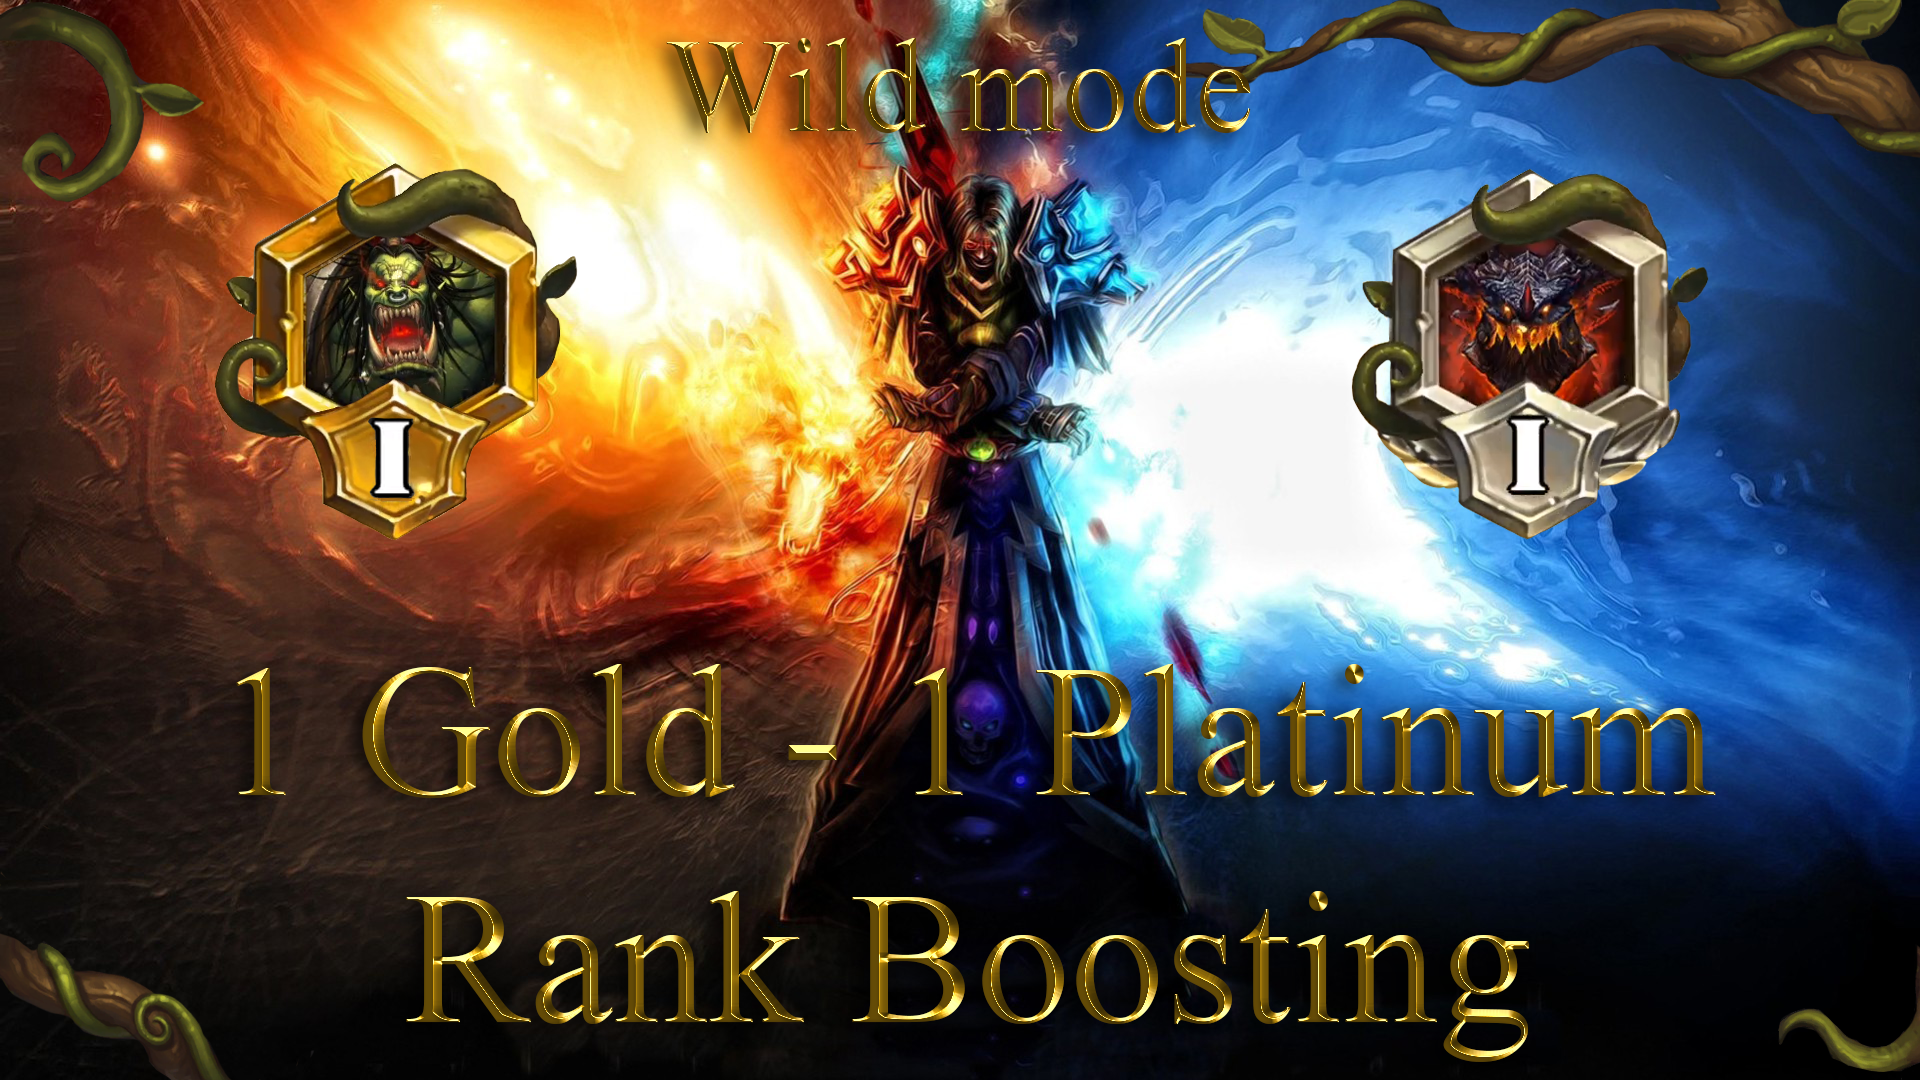 HEARTHSTONE: 1 RANK (GOLD) - 1 RANK (PLATINUM) WILD MODE GBD - e2p.com